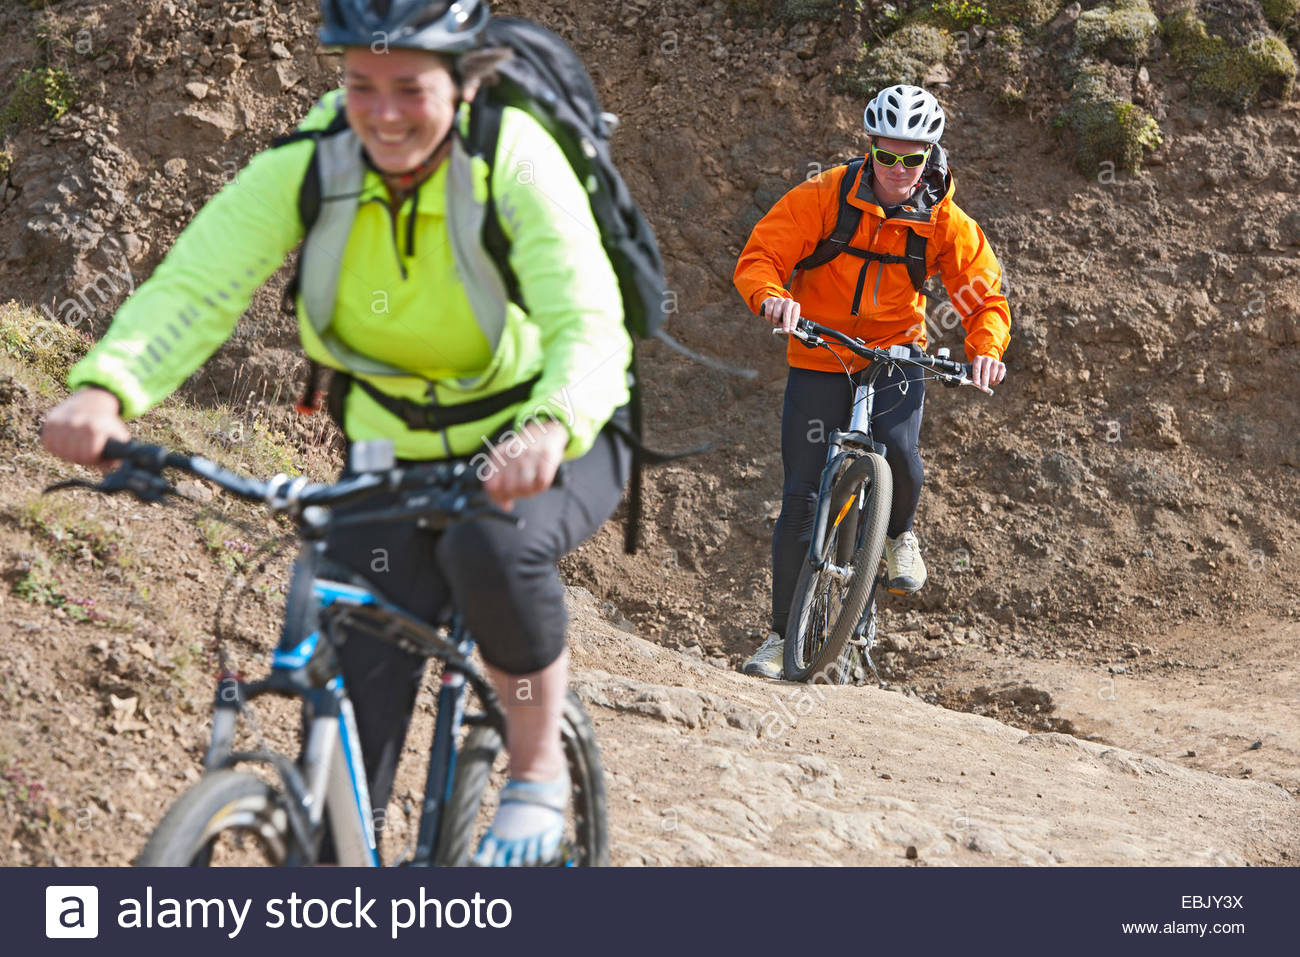 Close up of mountain bikers cycling on dirt track, Reykjadalur valley, South West Iceland - Stock Image